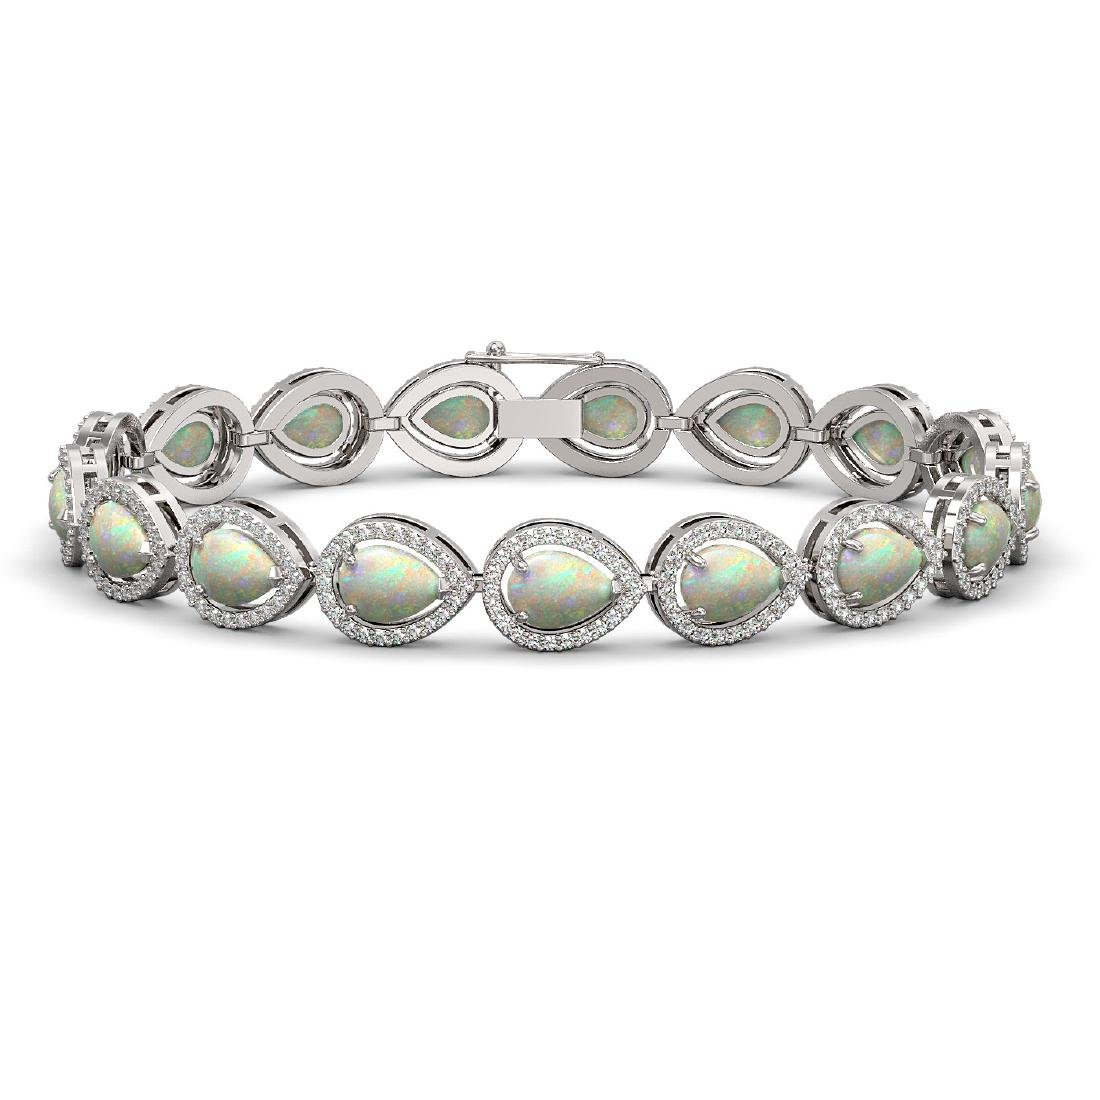 13.19 CTW Opal & Diamond Halo Bracelet 10K White Gold